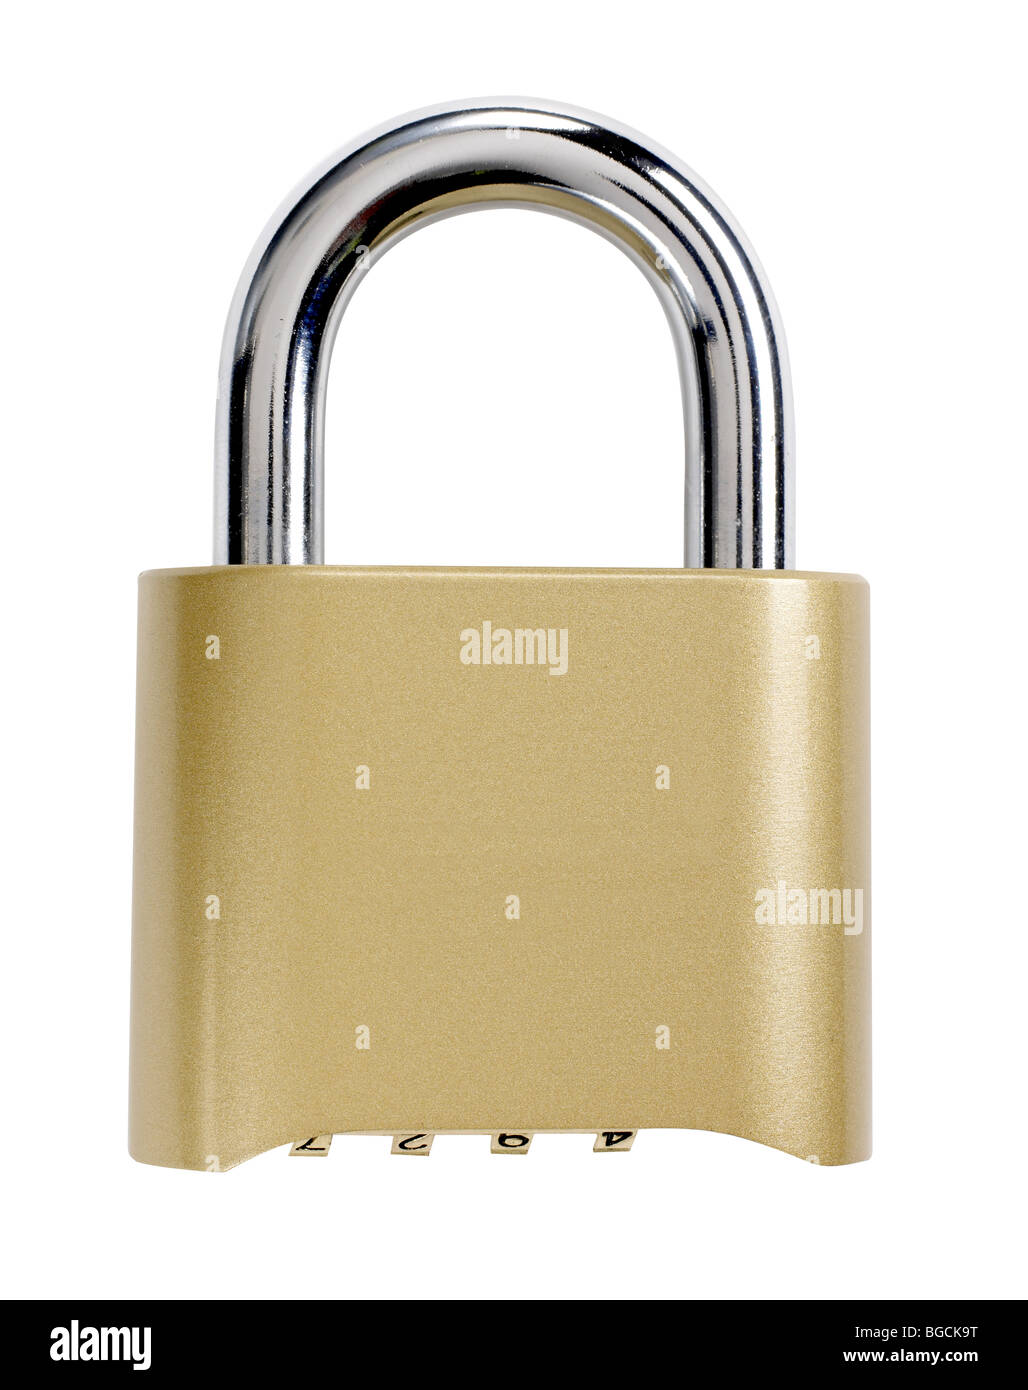 Combination Lock - Stock Image